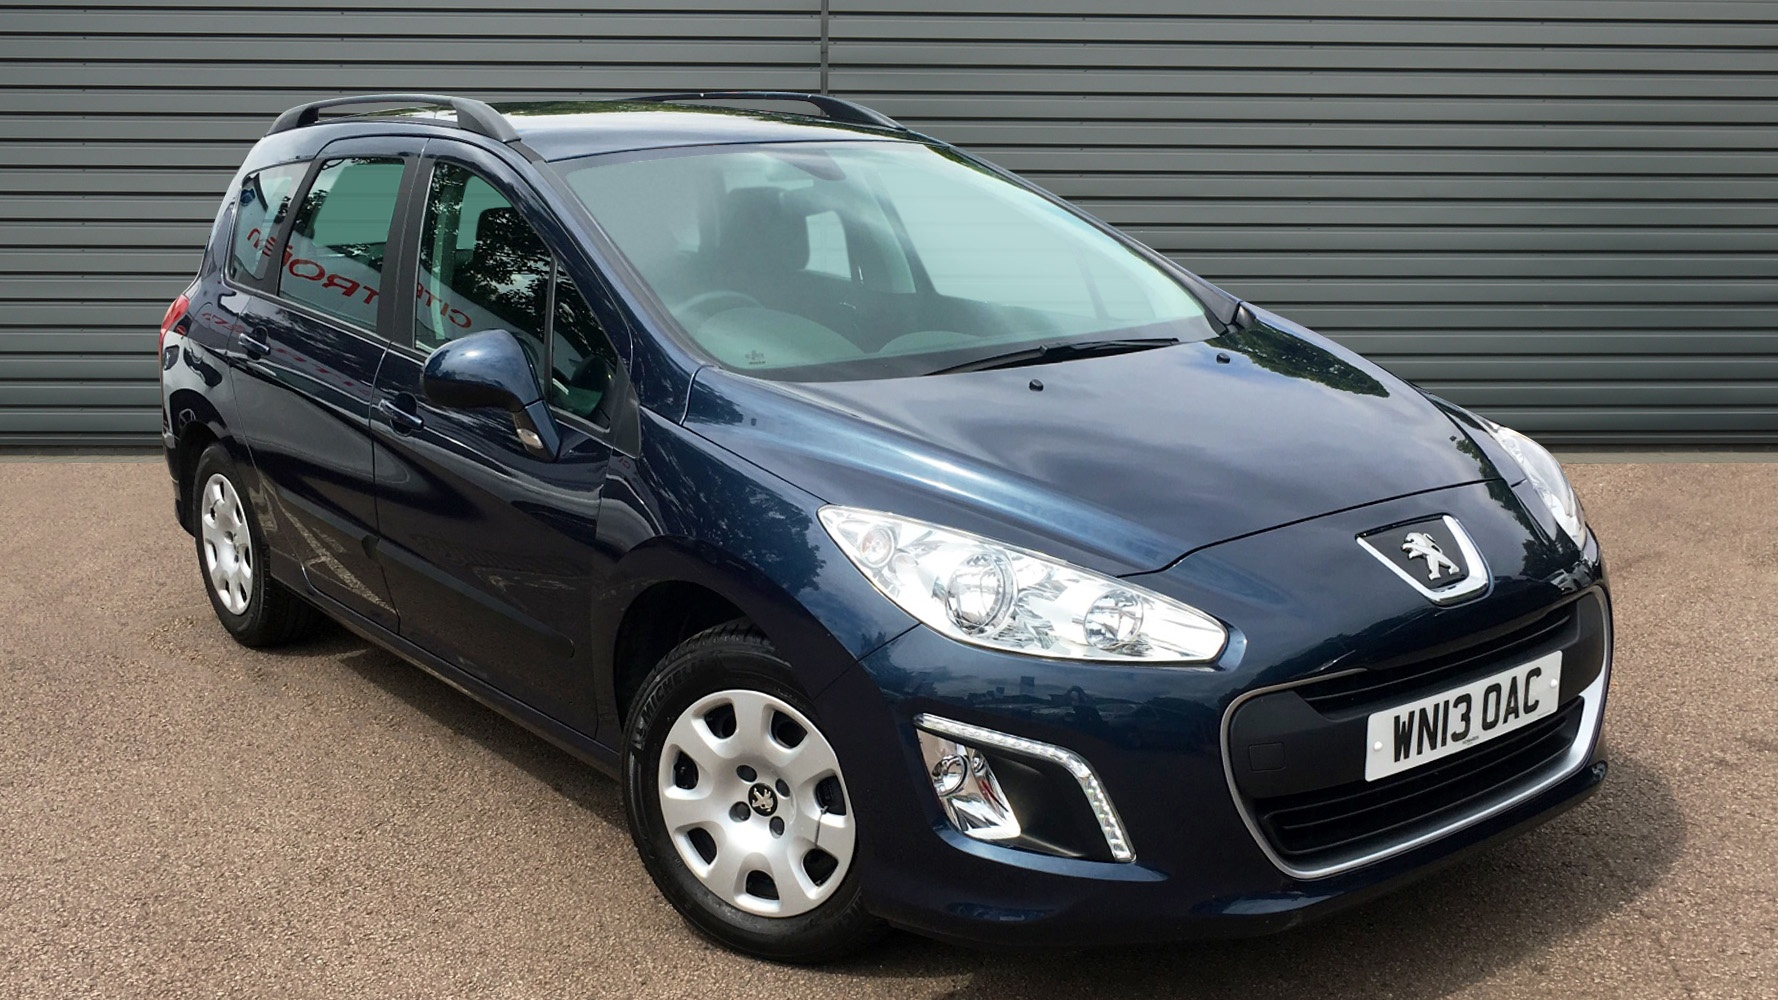 used peugeot 308 sw estate 1 6 hdi fap access 5dr 2013 wn13oac. Black Bedroom Furniture Sets. Home Design Ideas